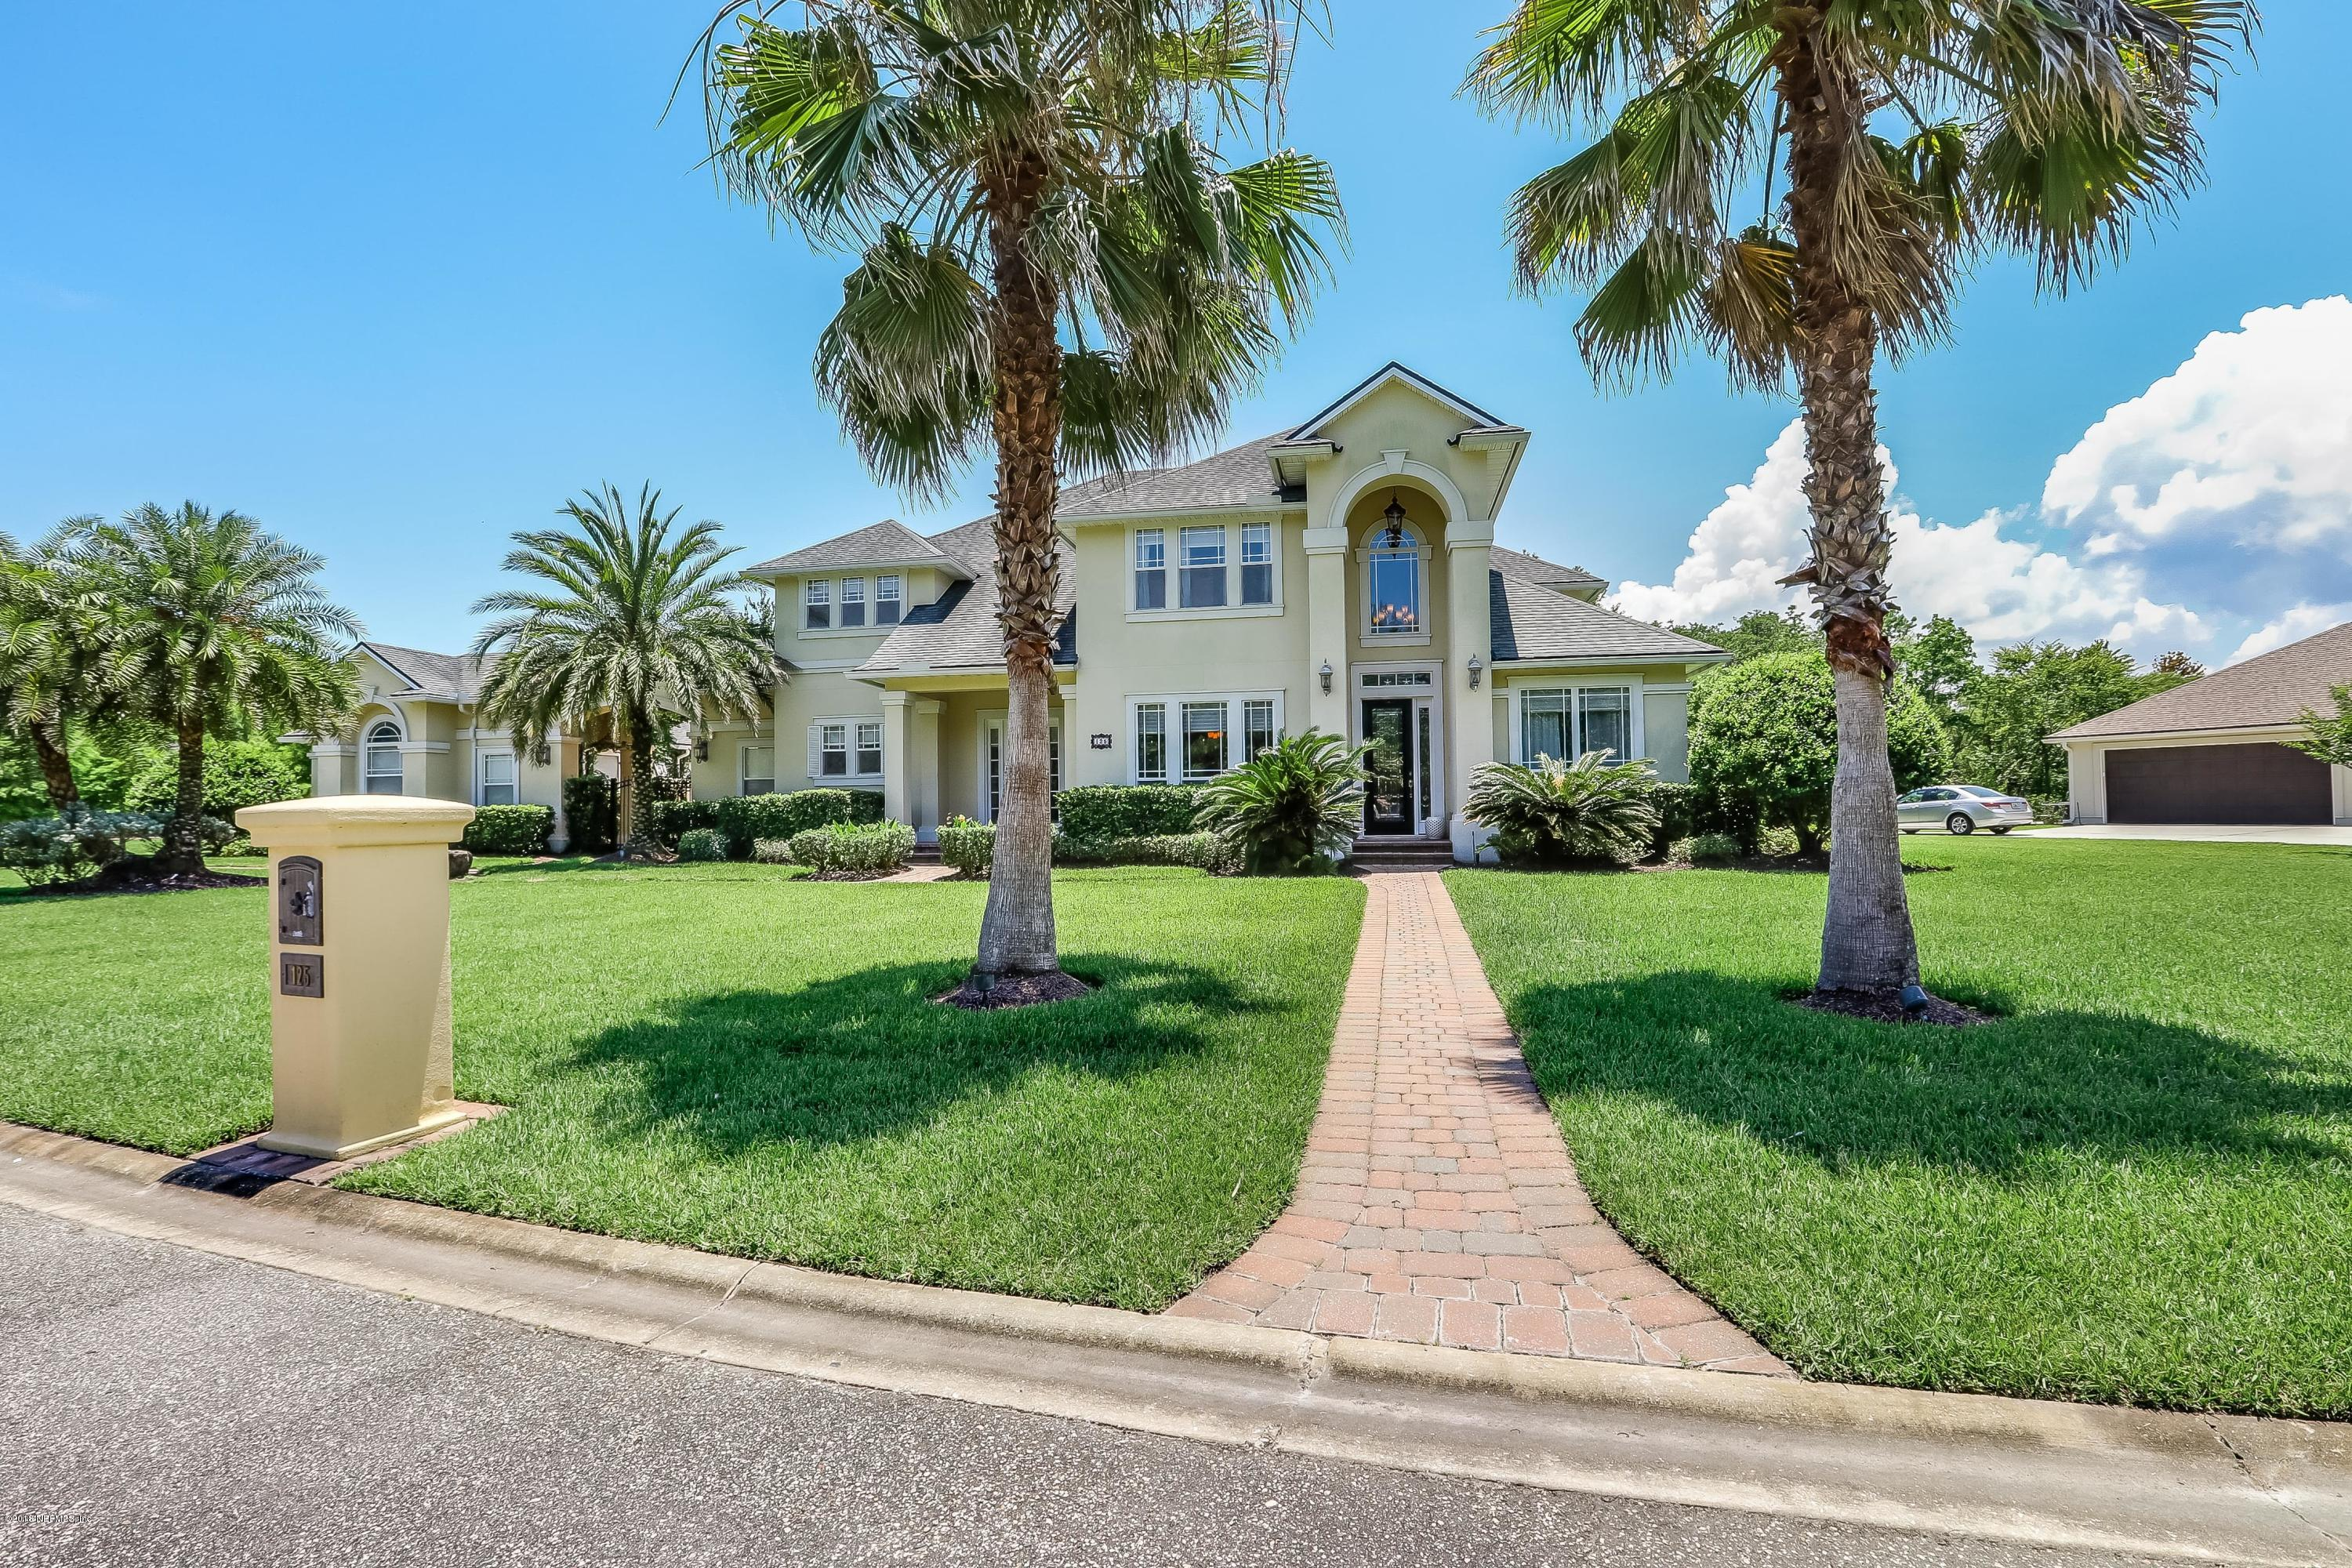 125 KING SAGO CT PONTE VEDRA BEACH - 7